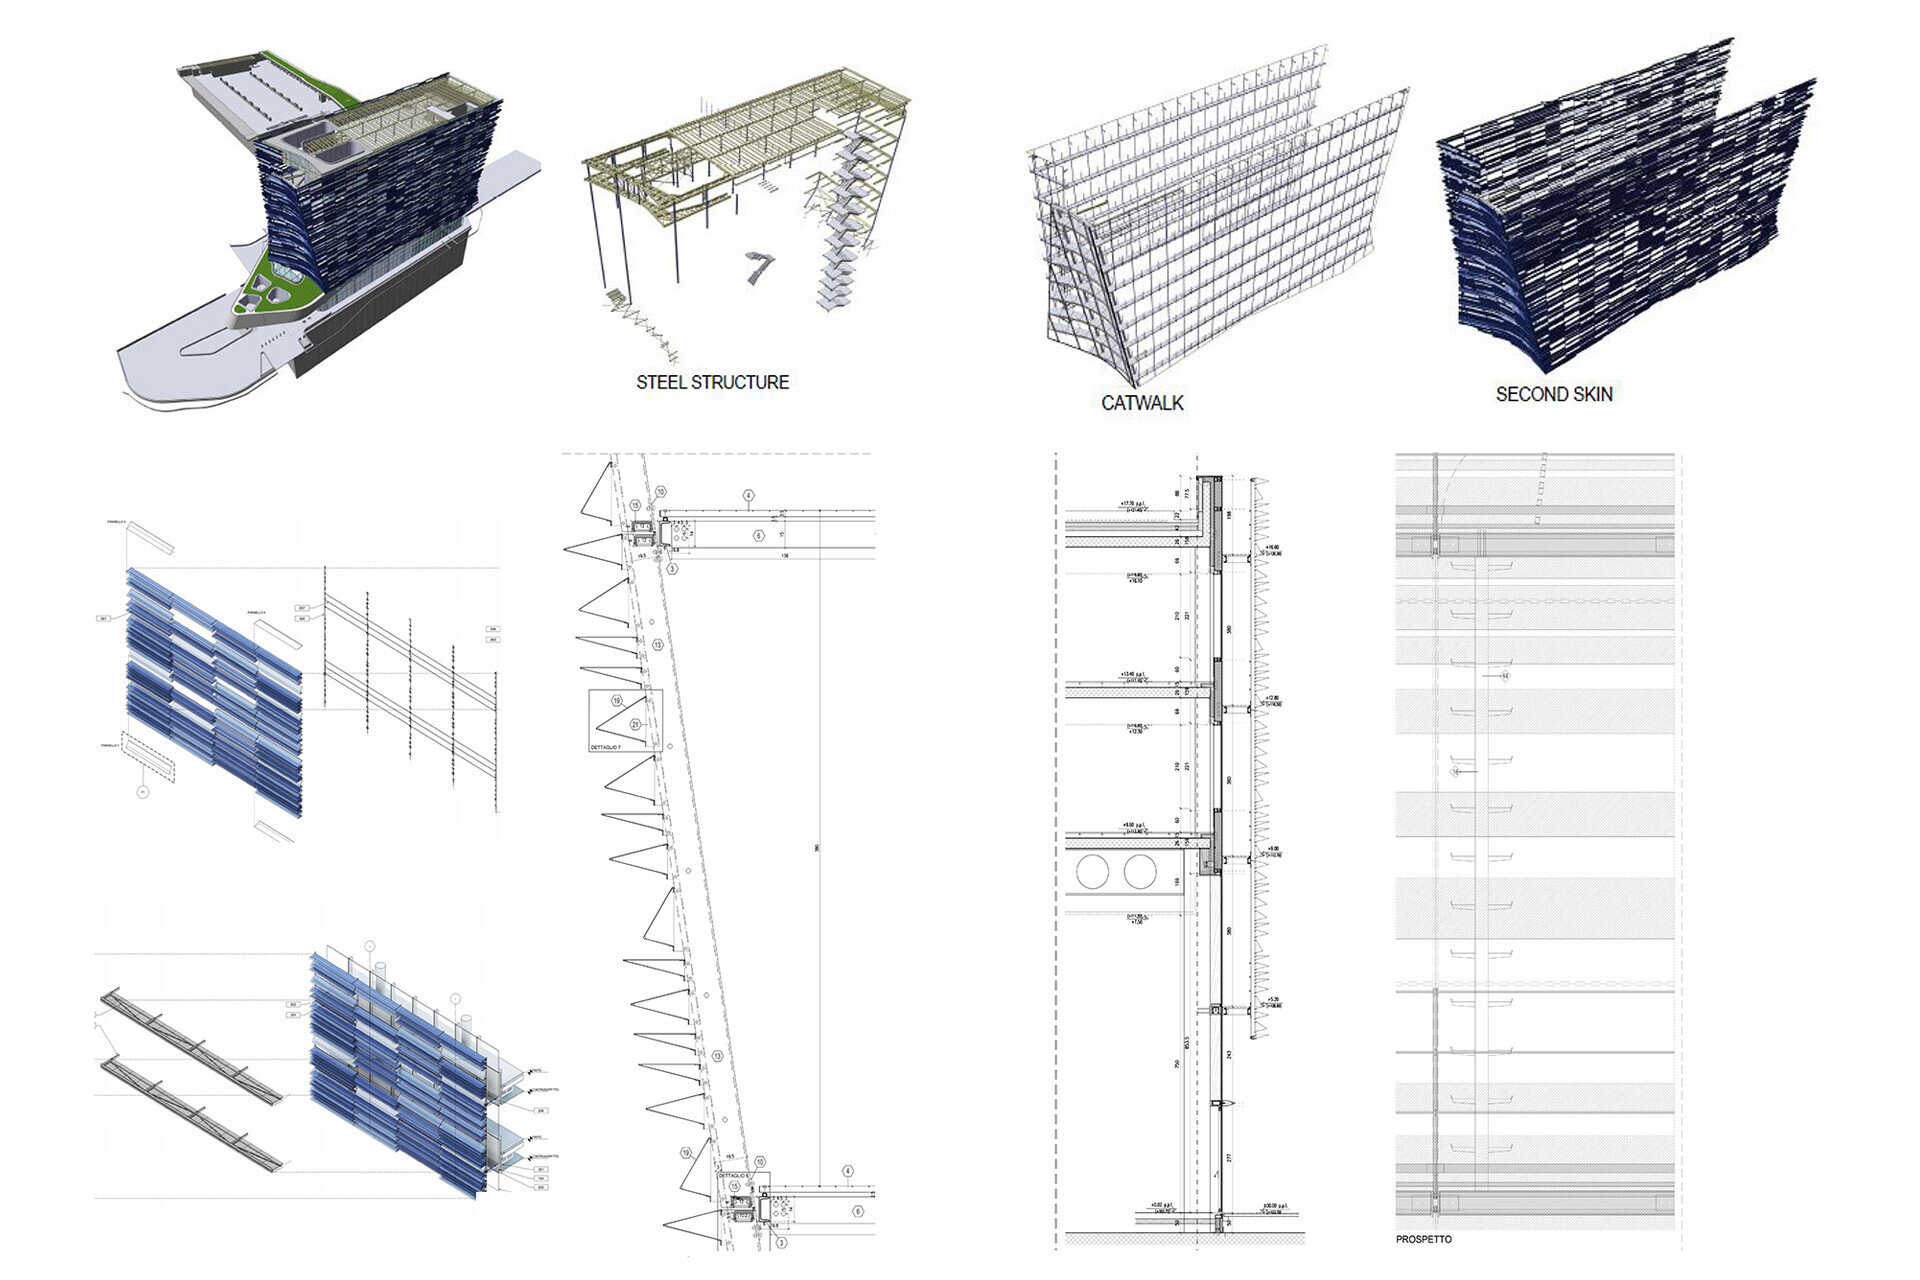 Facade design engineering by SCE Project SNAM Dettagli